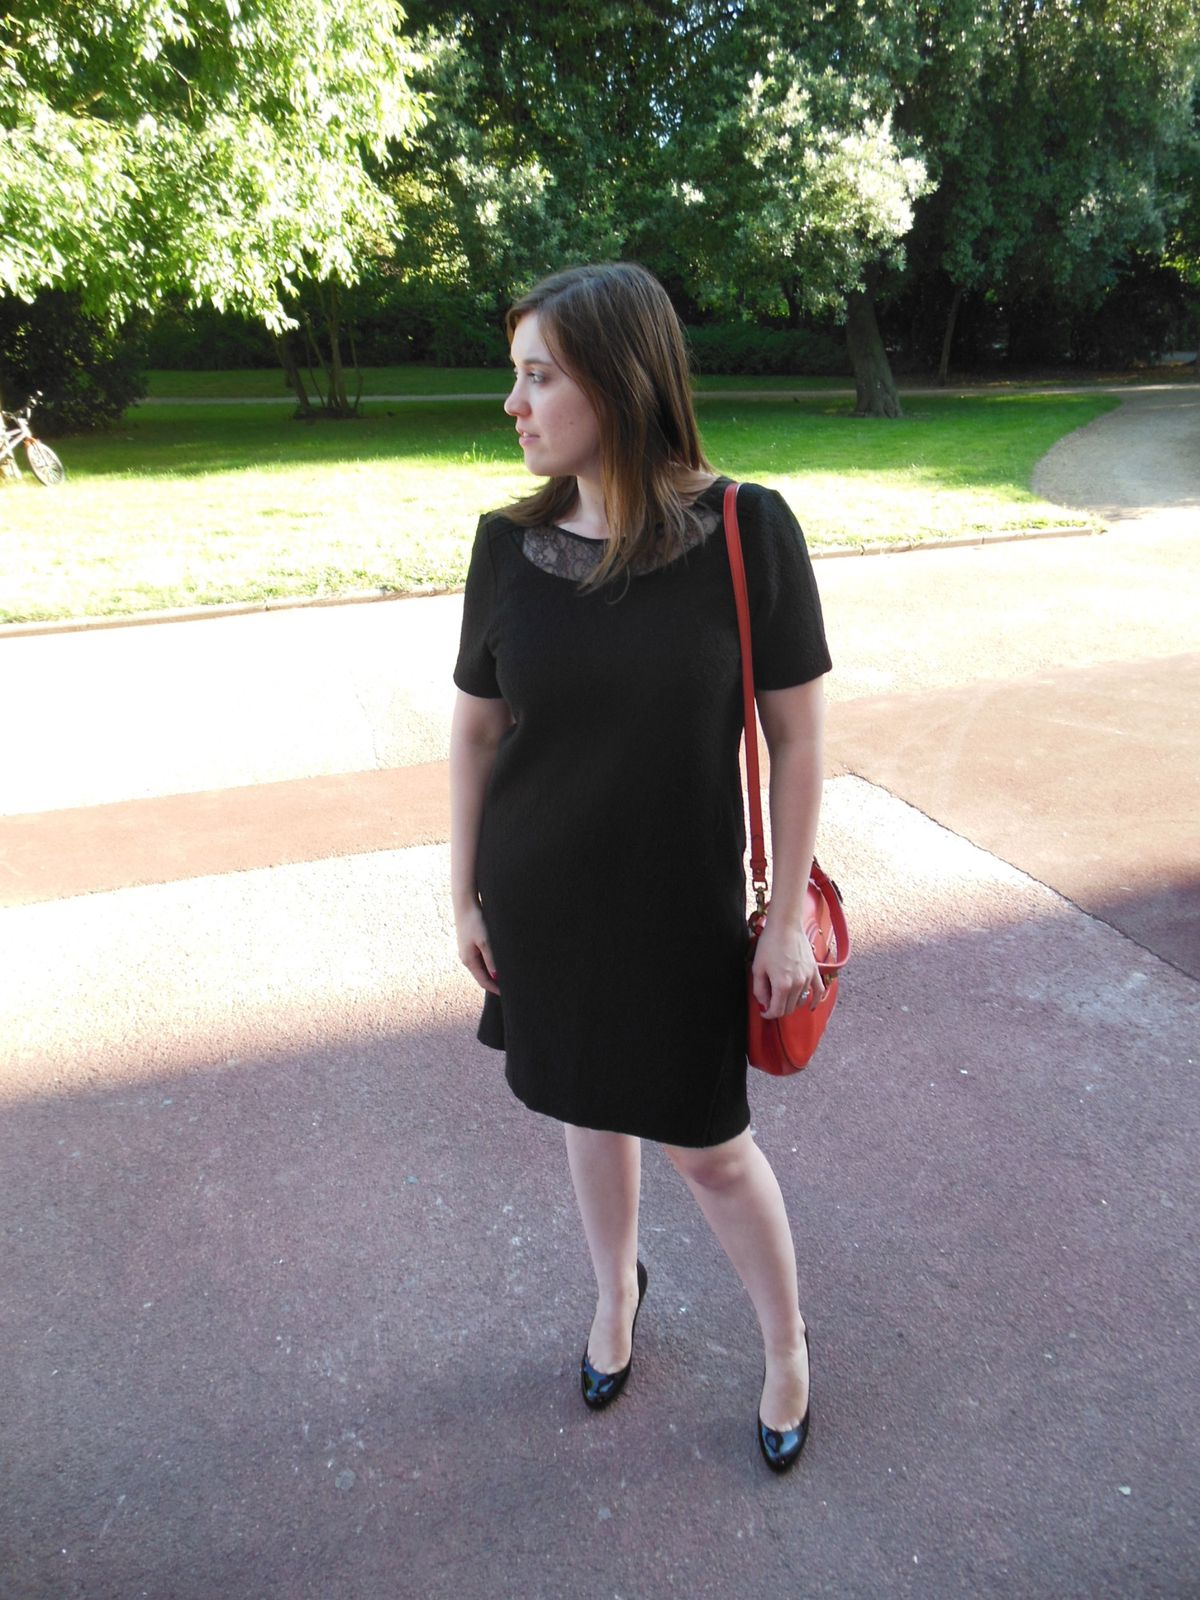 Robe - Marc By Marc Jacobs /// Escarpins - Louboutin /// Sac - Coach